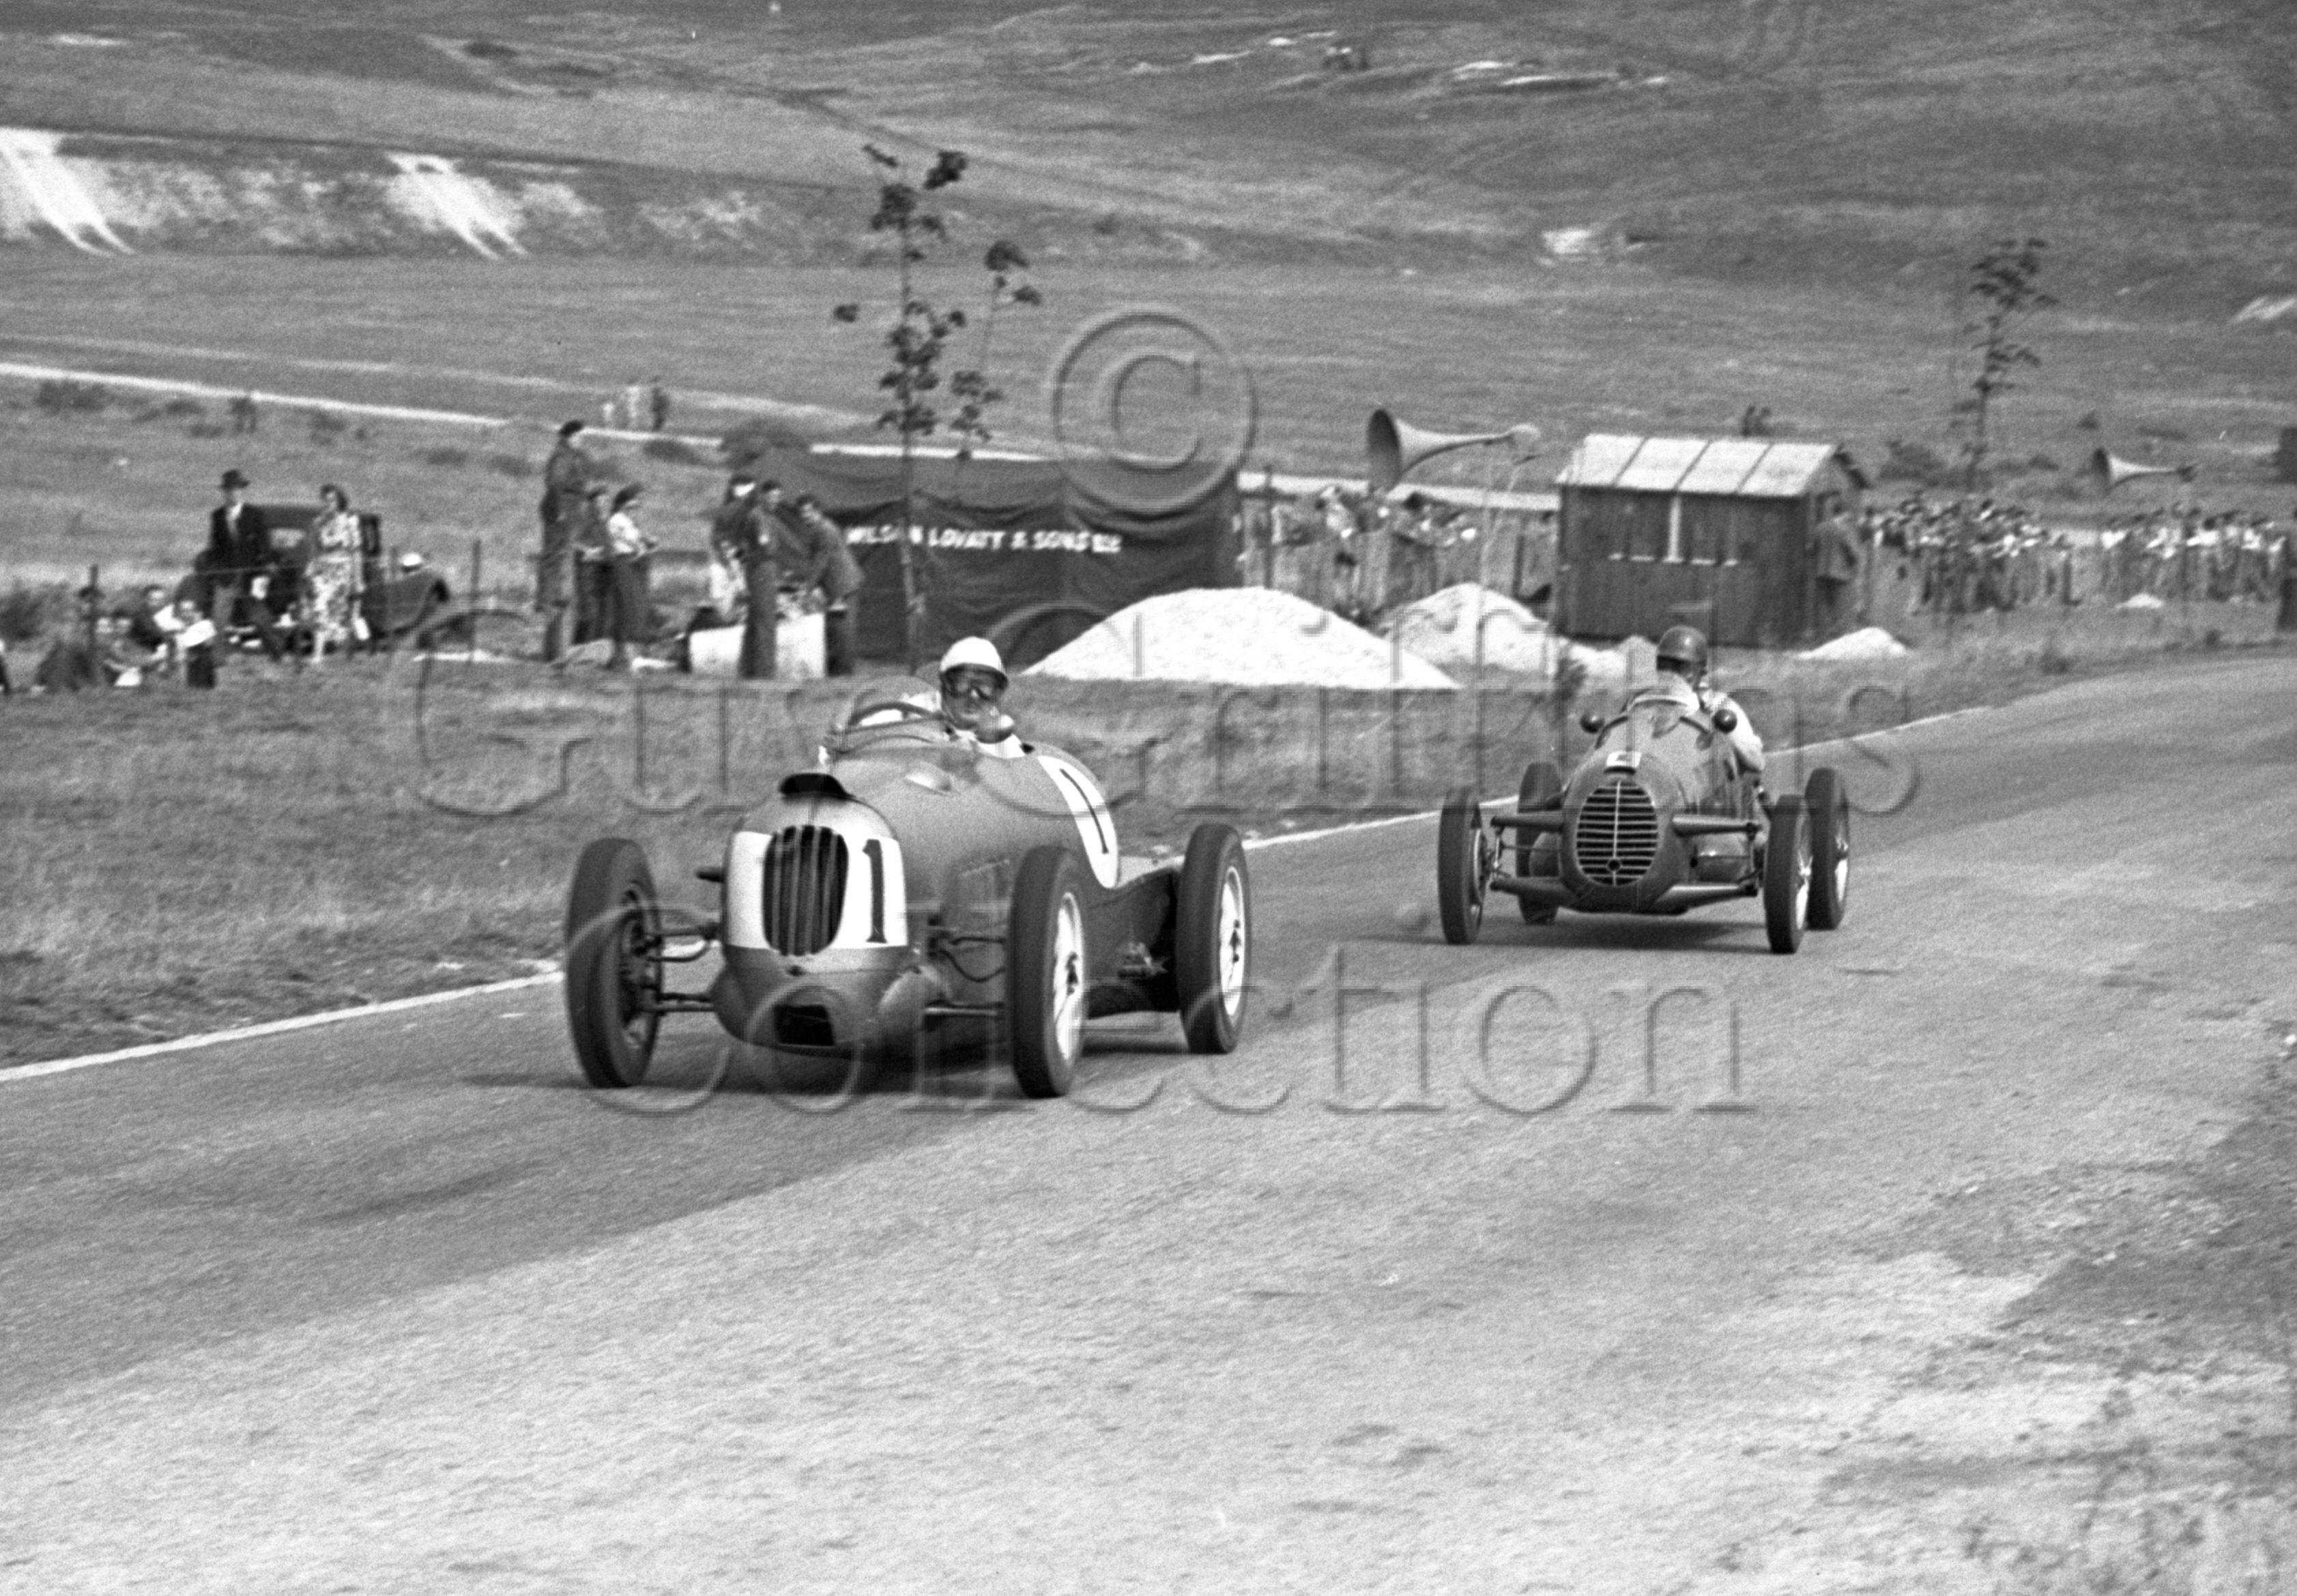 23-144–F-Kennington–Cisitalia–Blandford–27-08-1949.jpg - The Guy Griffiths Collection